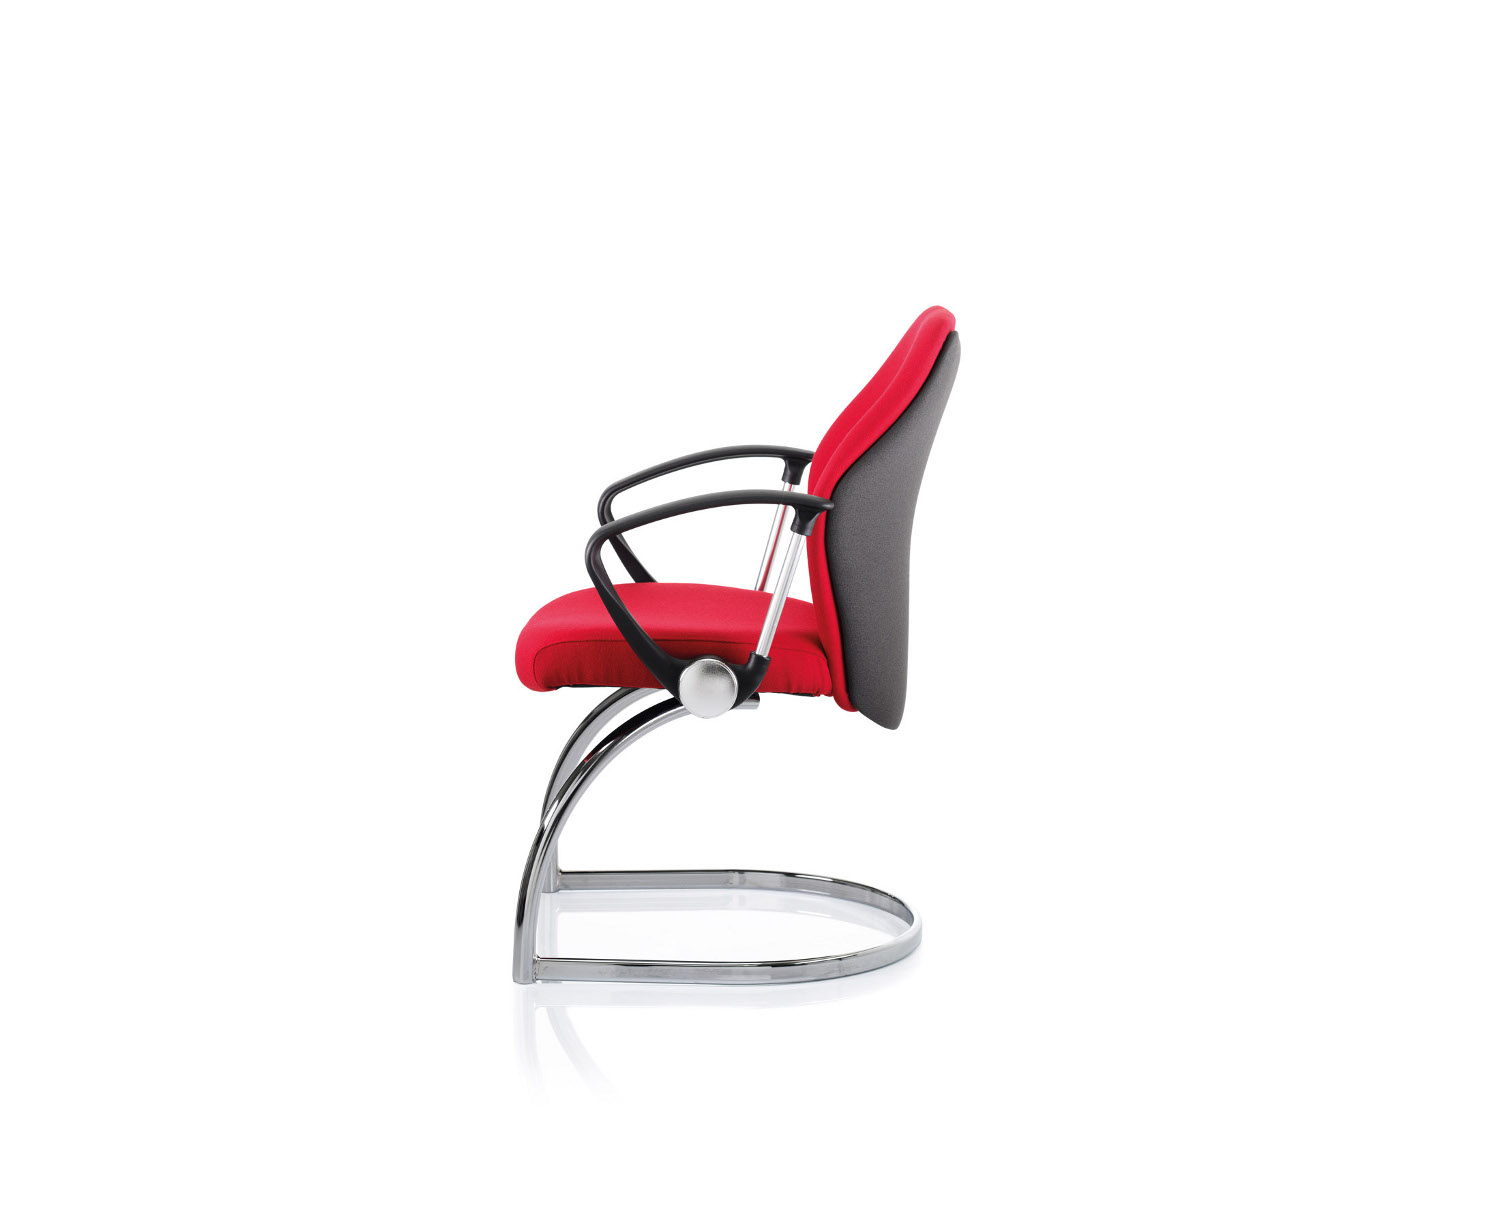 ergonomic chair guidelines wooden stool office high density foam and very comfortable